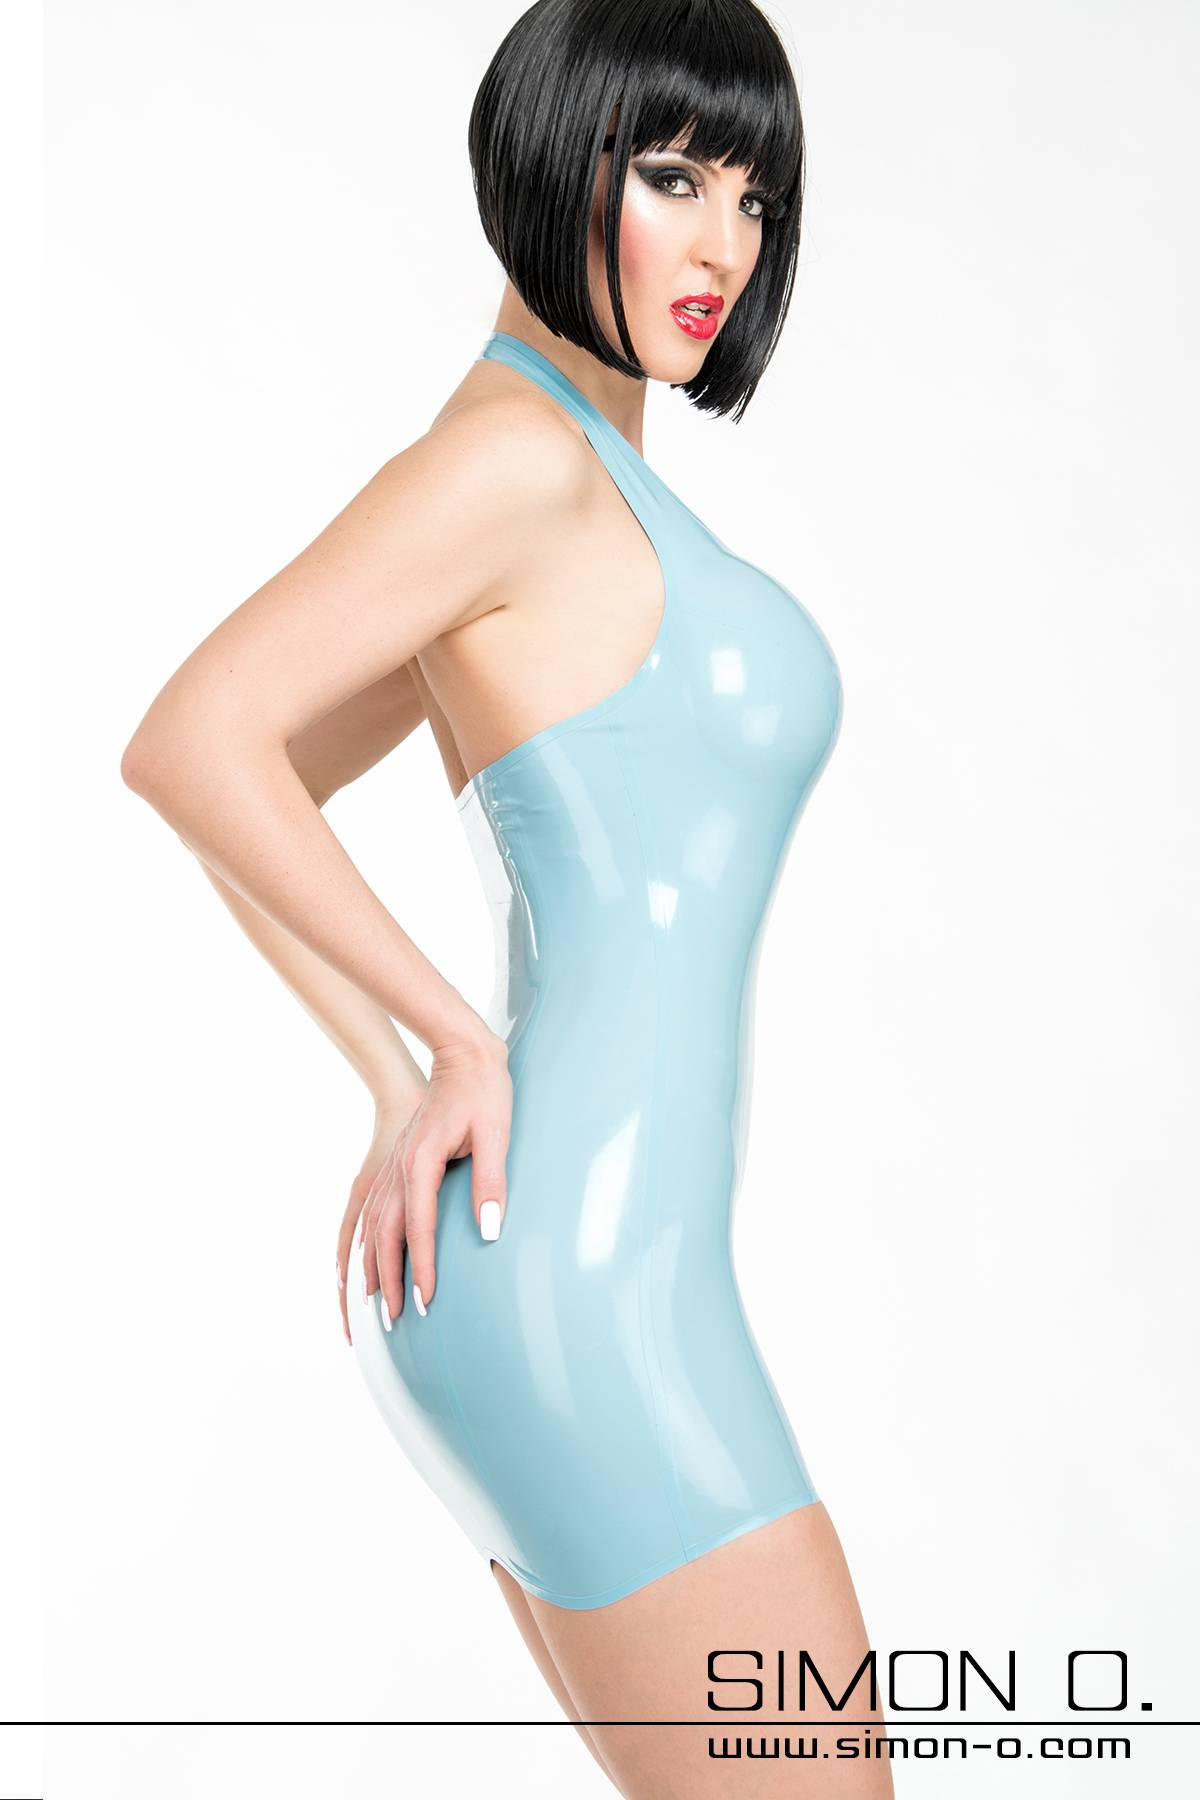 A woman wears a light blue halter neck mini dress made of latex. Shiny and close fitting fit